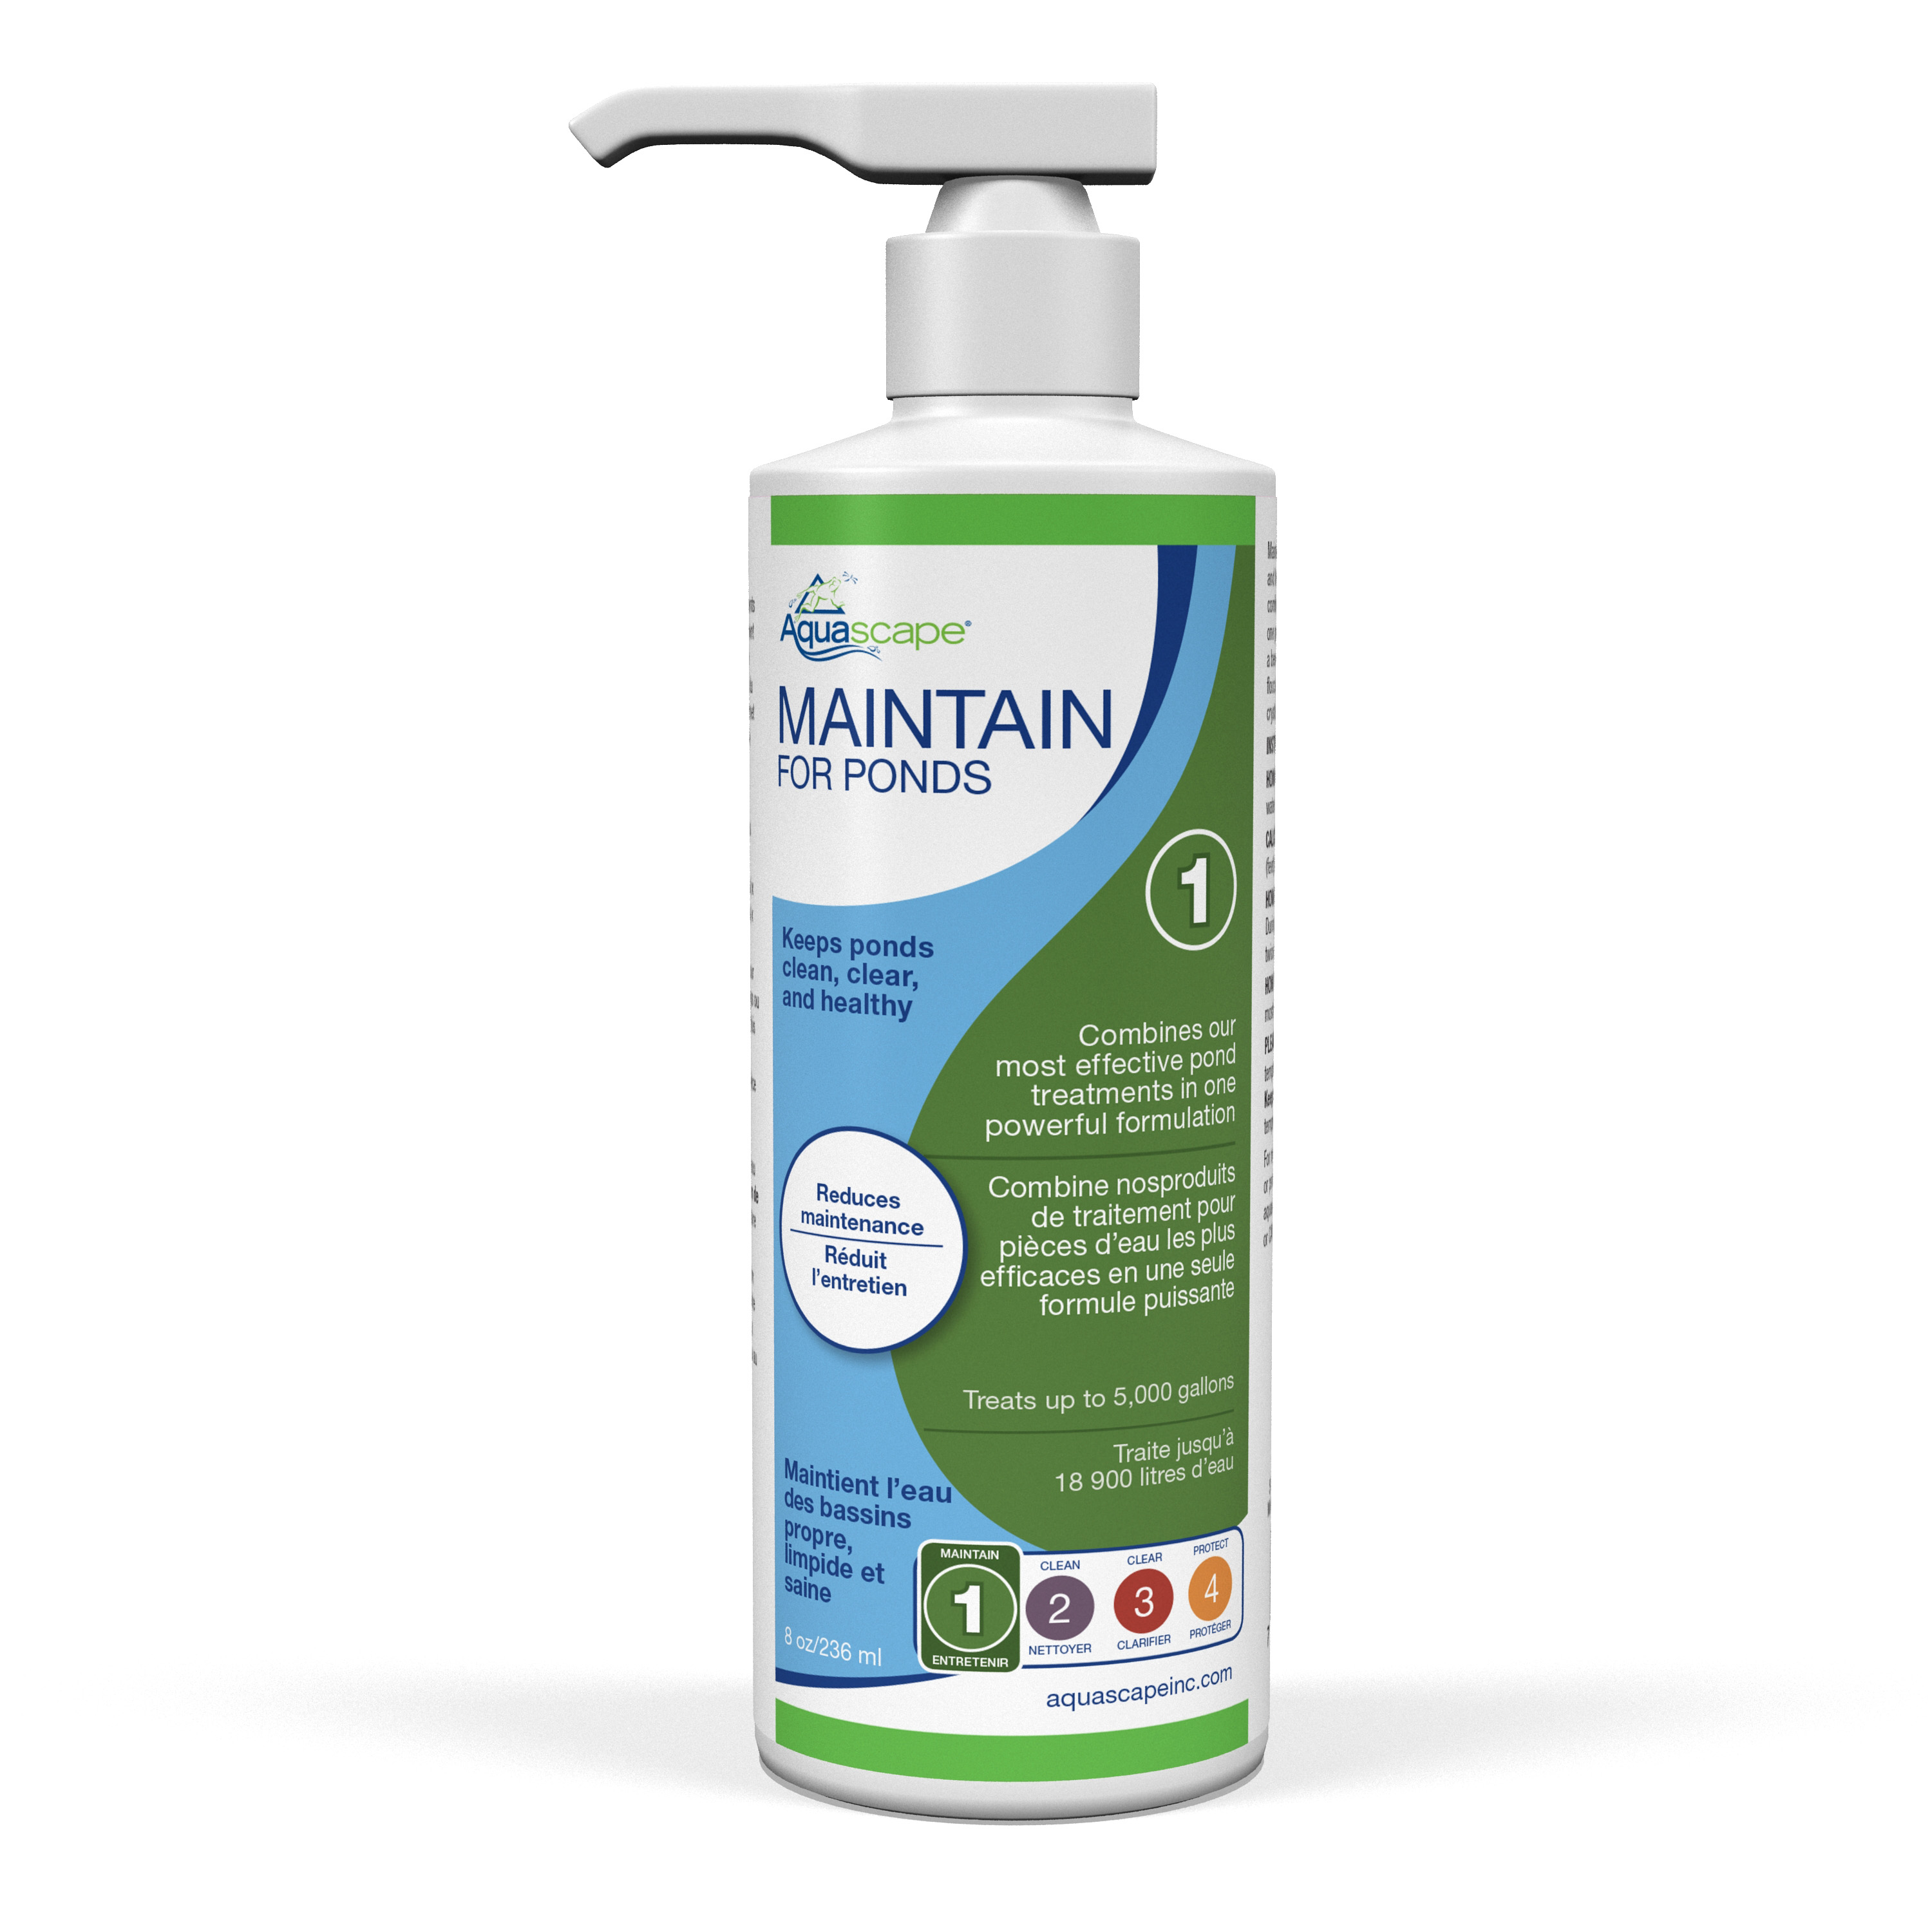 Maintain for Ponds - 8 oz / 236 ml